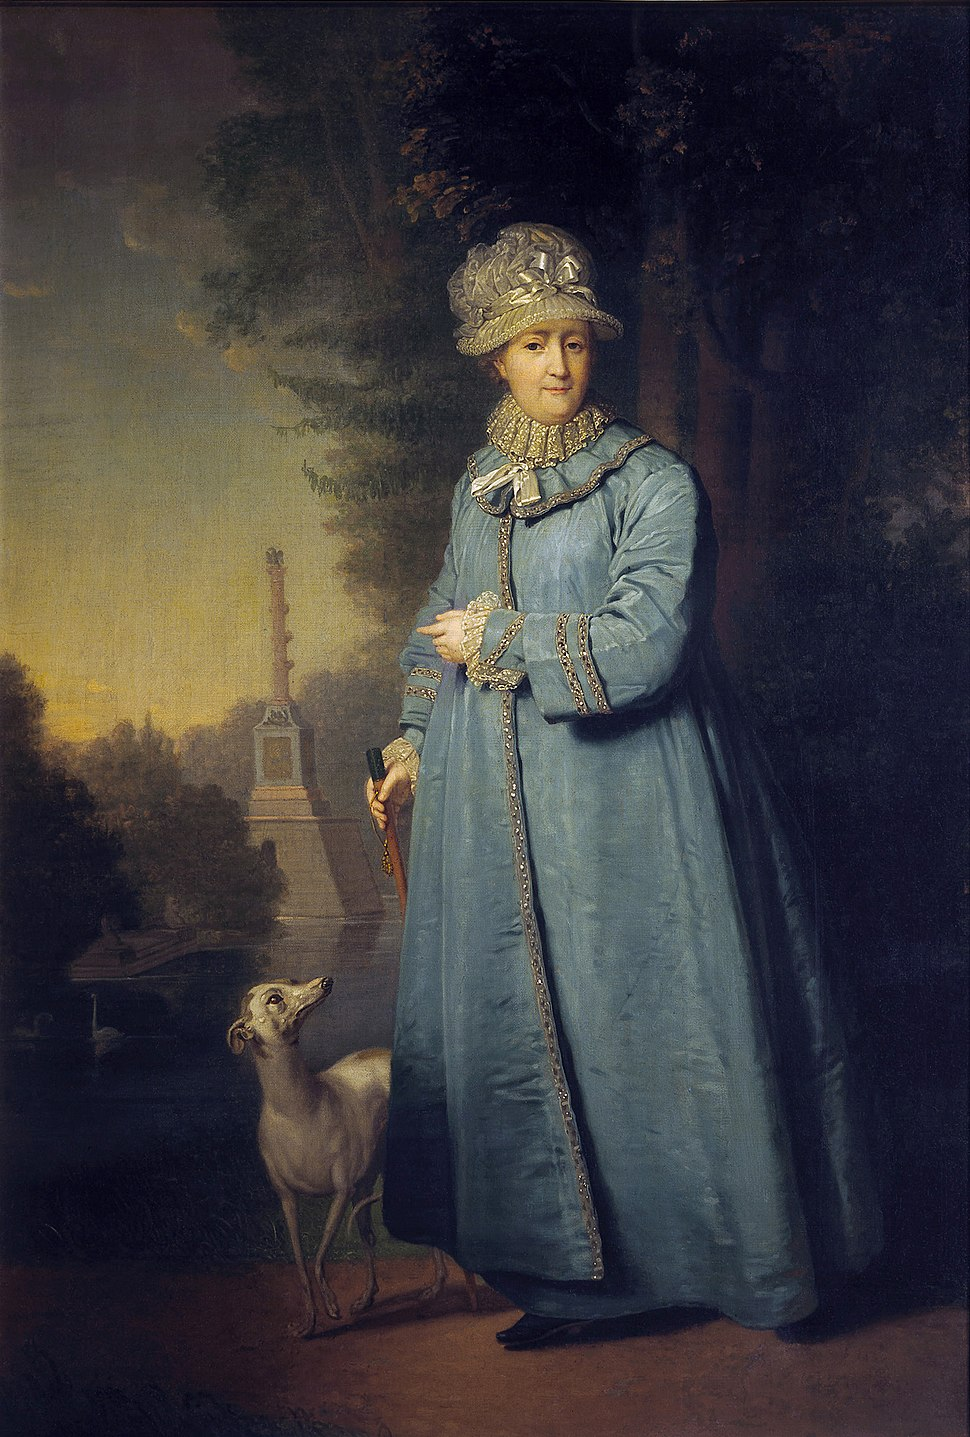 Catherine II walking by V.Borovikovskiy (1794, Tretyakov gallery)